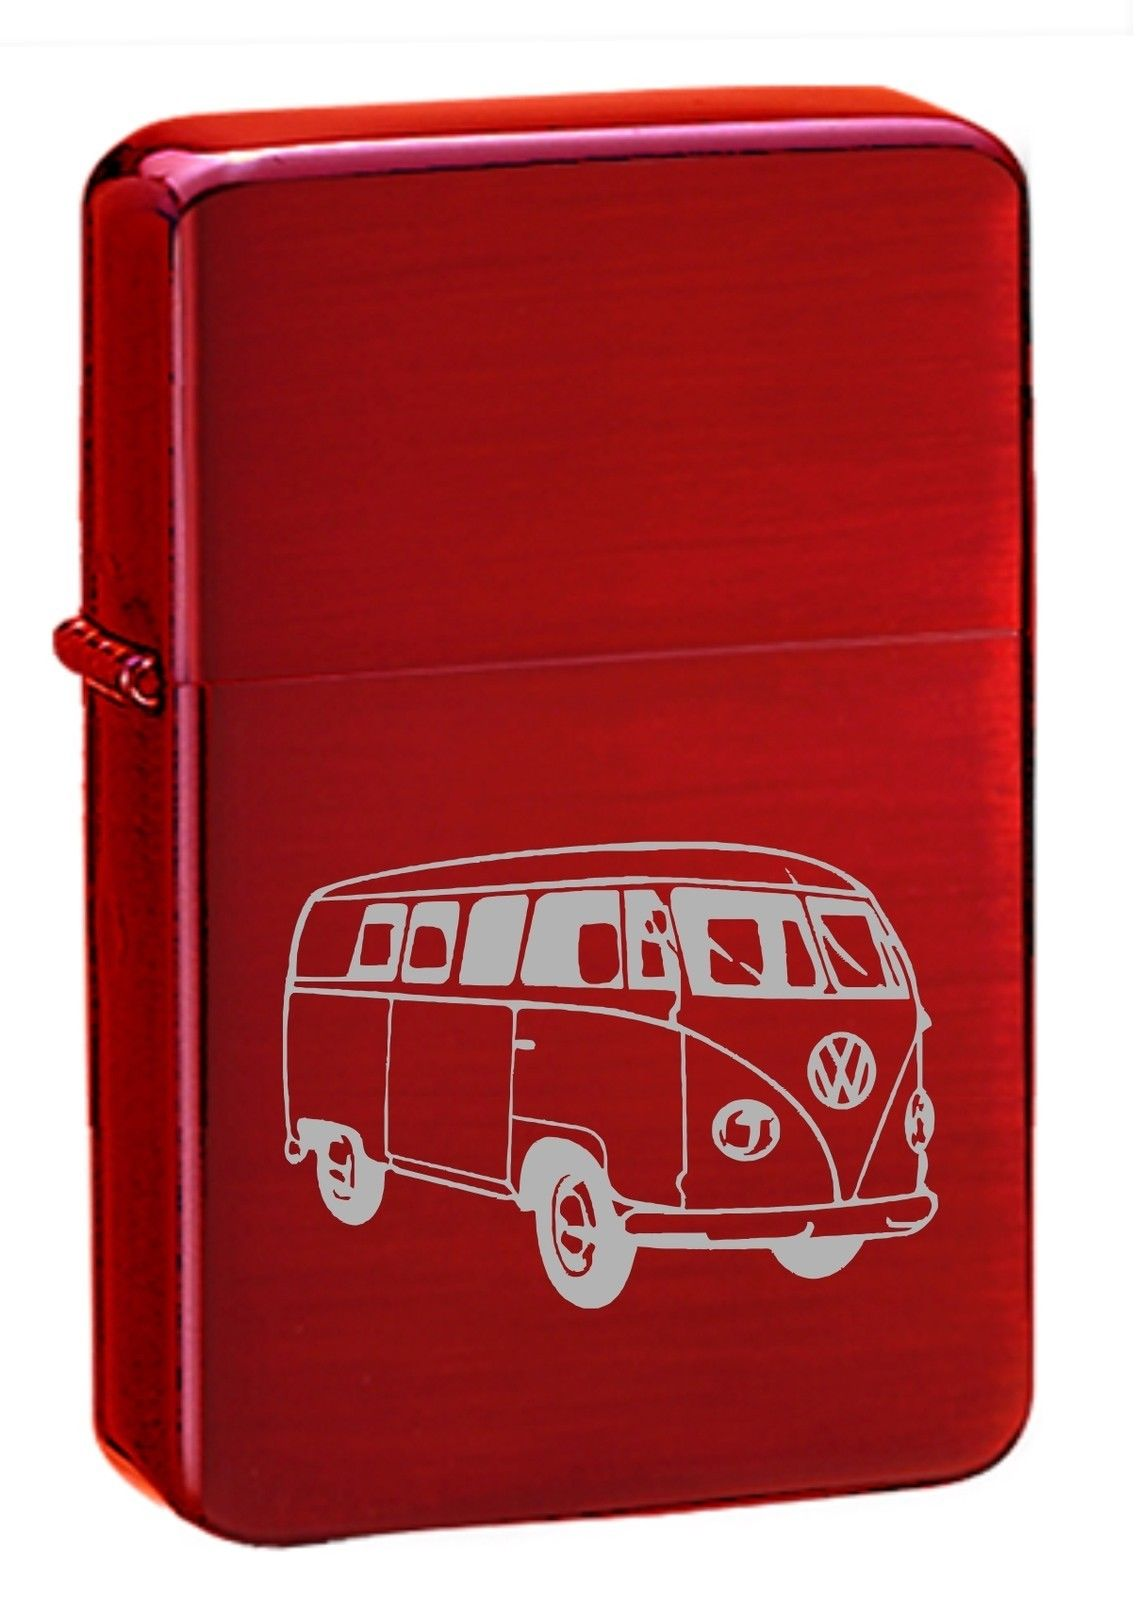 vw-red-ice